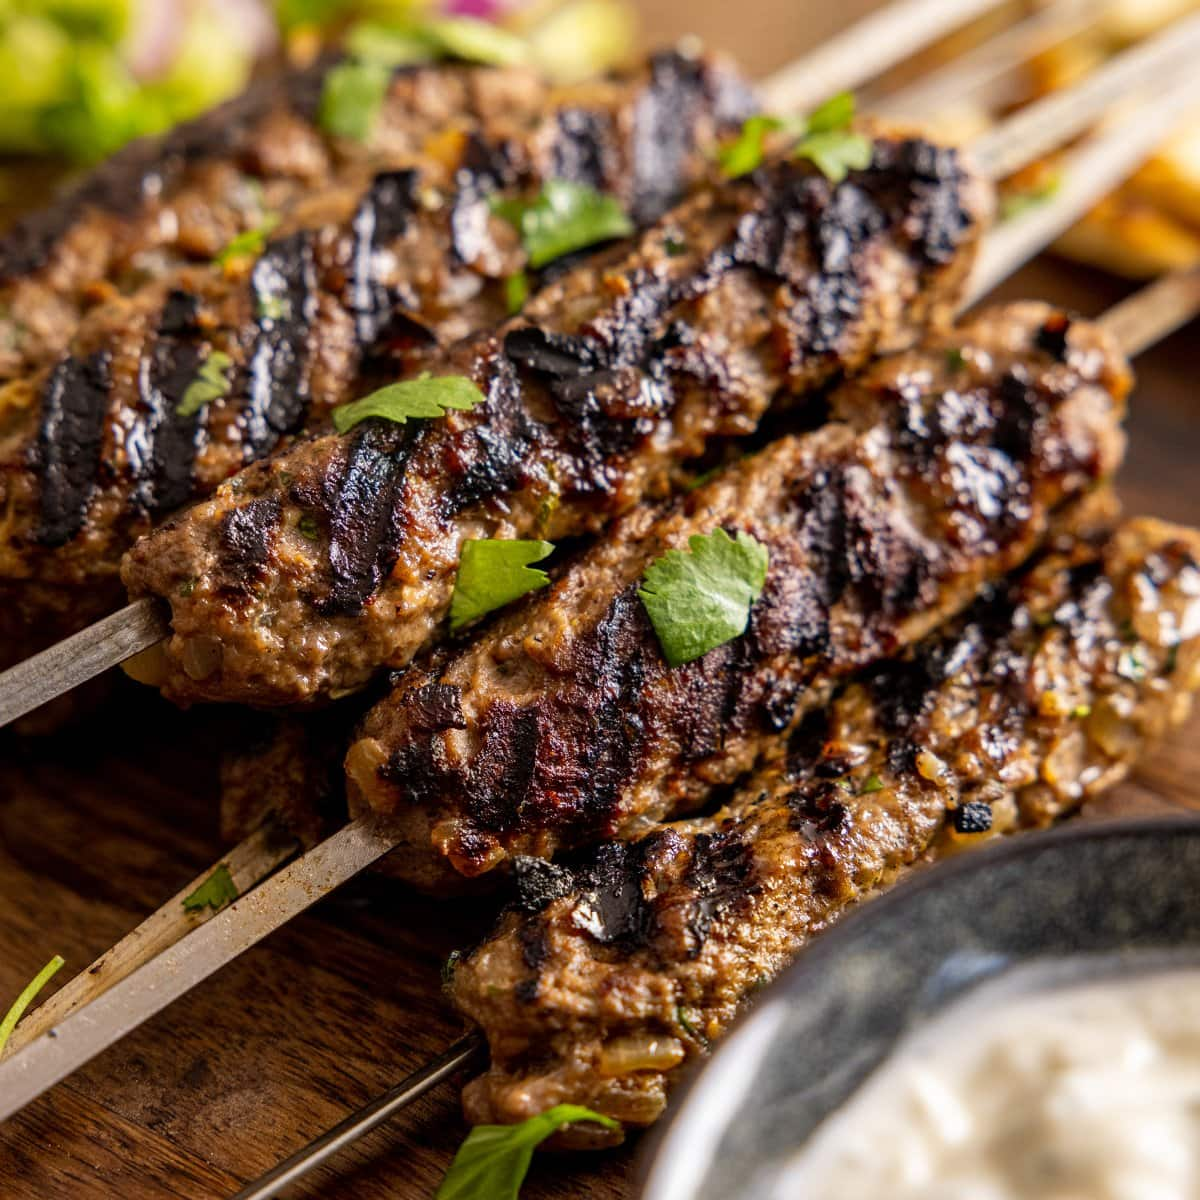 Close up pictures of lamb koftas on metal skewers sat on a wooden board with a bowl of dipping sauce in the foreground out of focus.